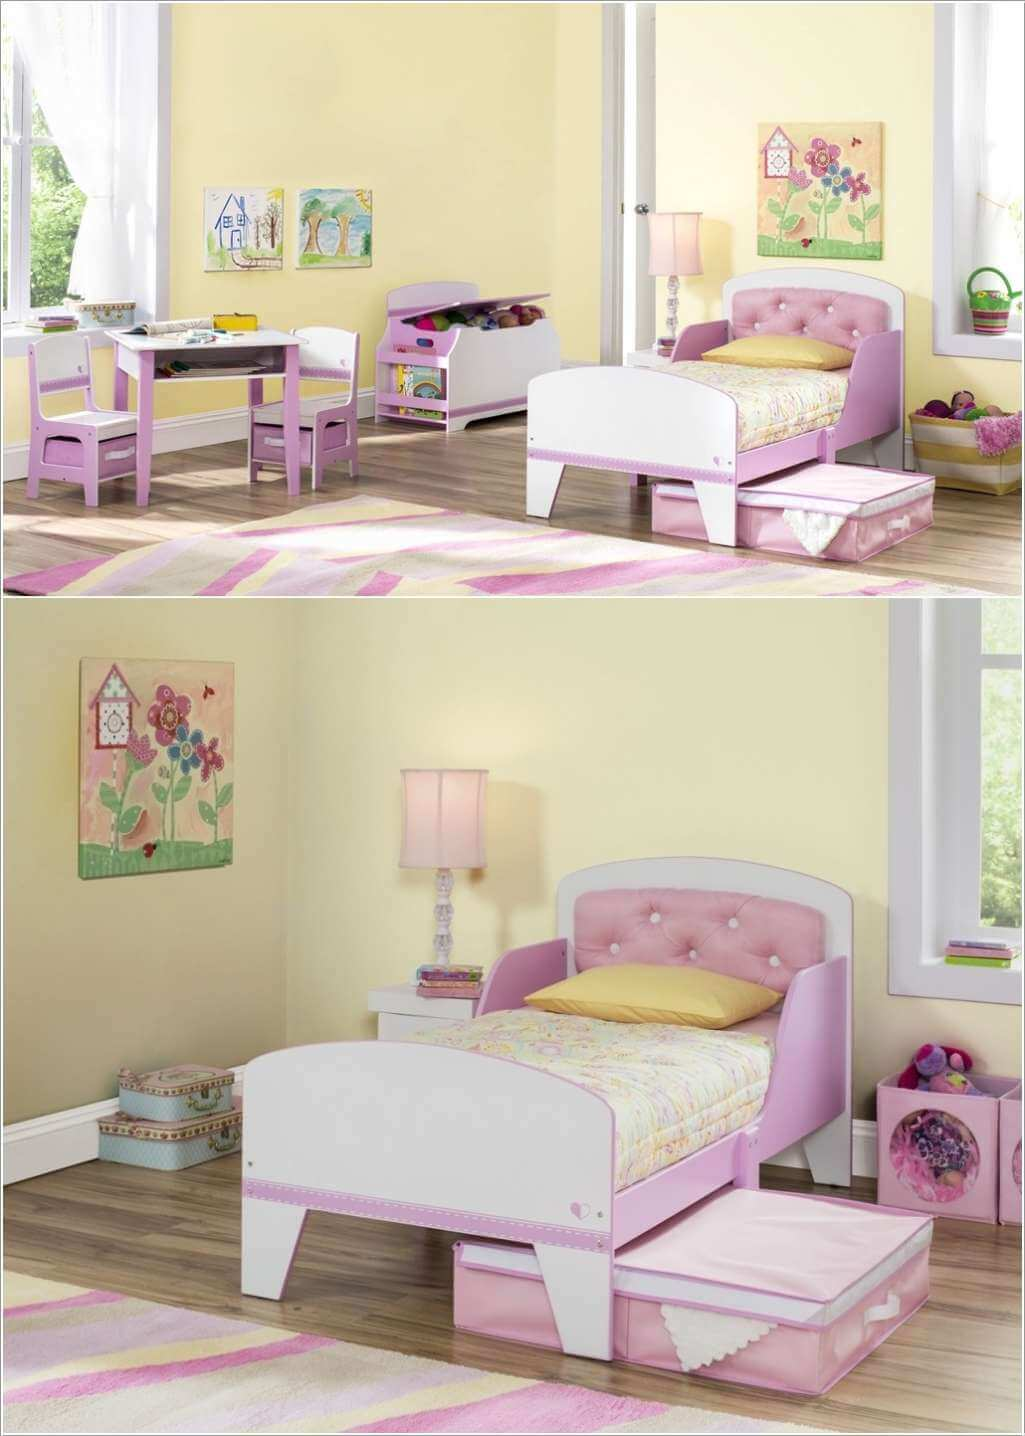 Toddler Bed For Girl 10 Cute Beds For Toddler Girls